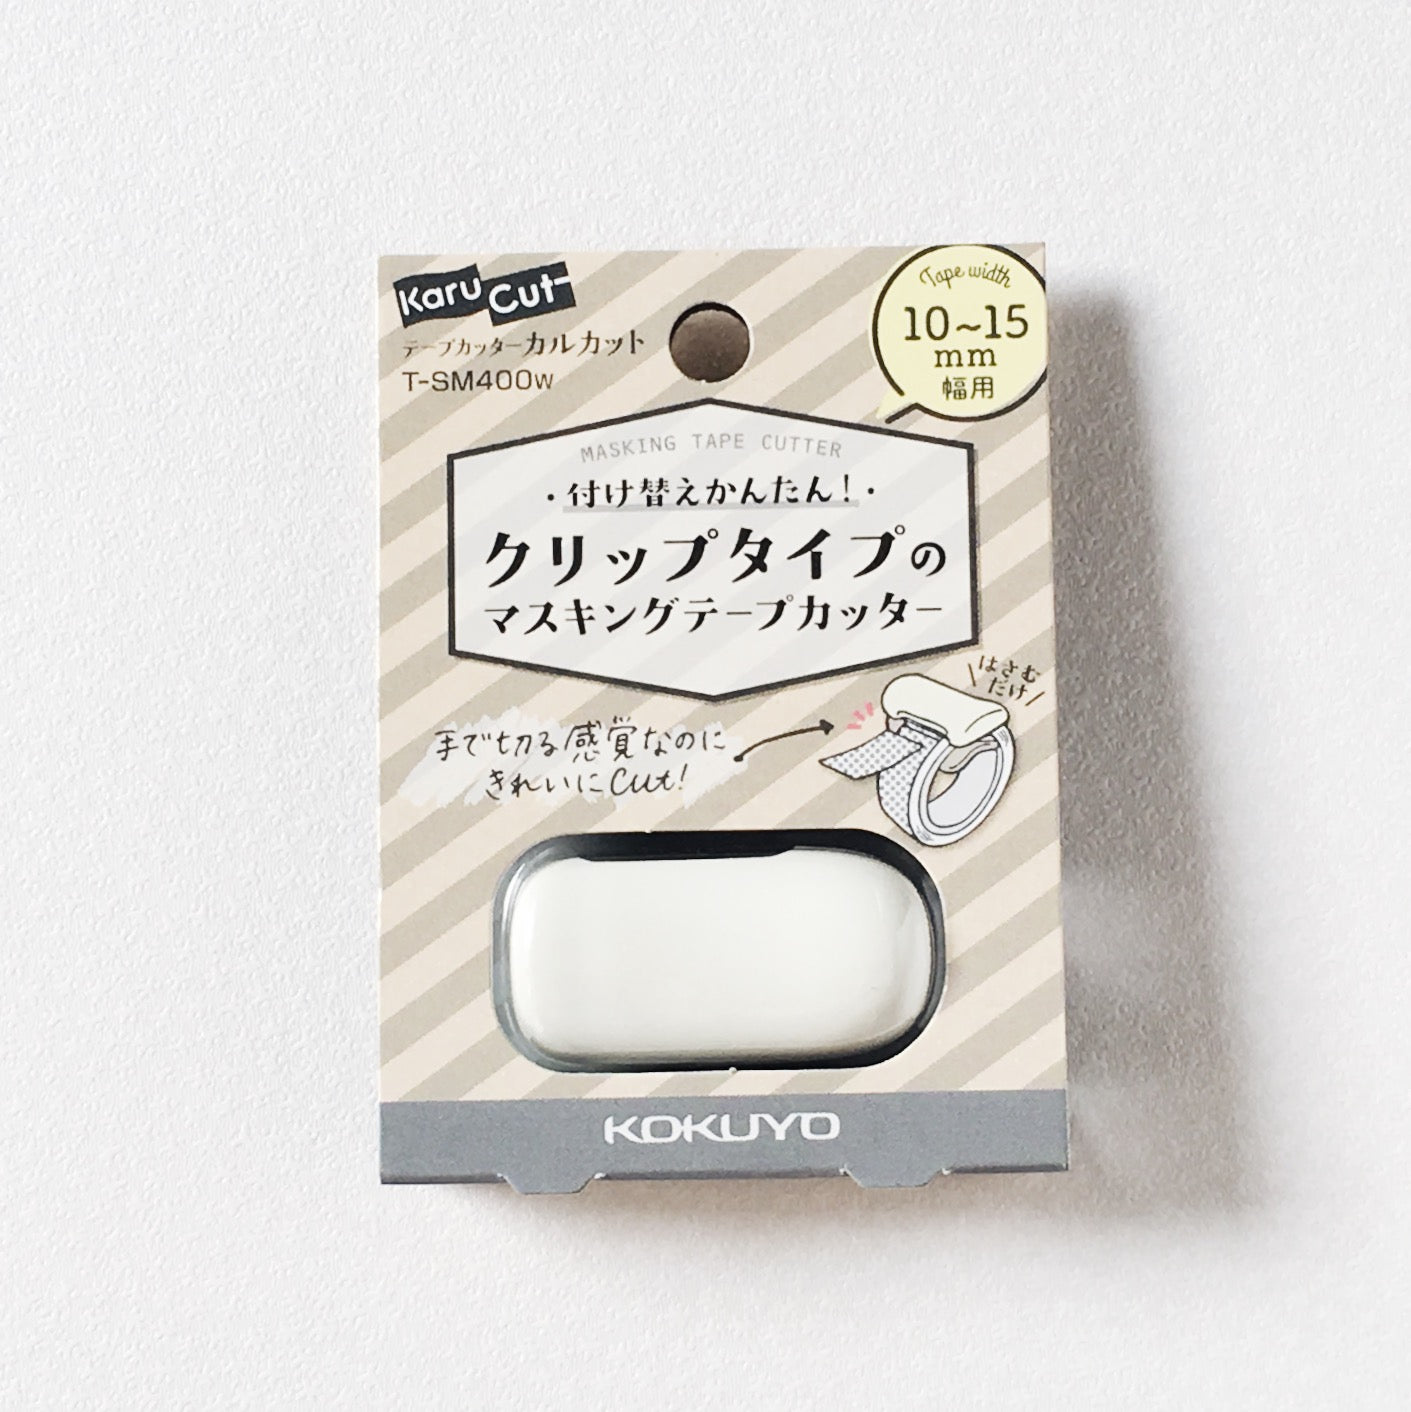 Karu-cut Clip washi tape cutter